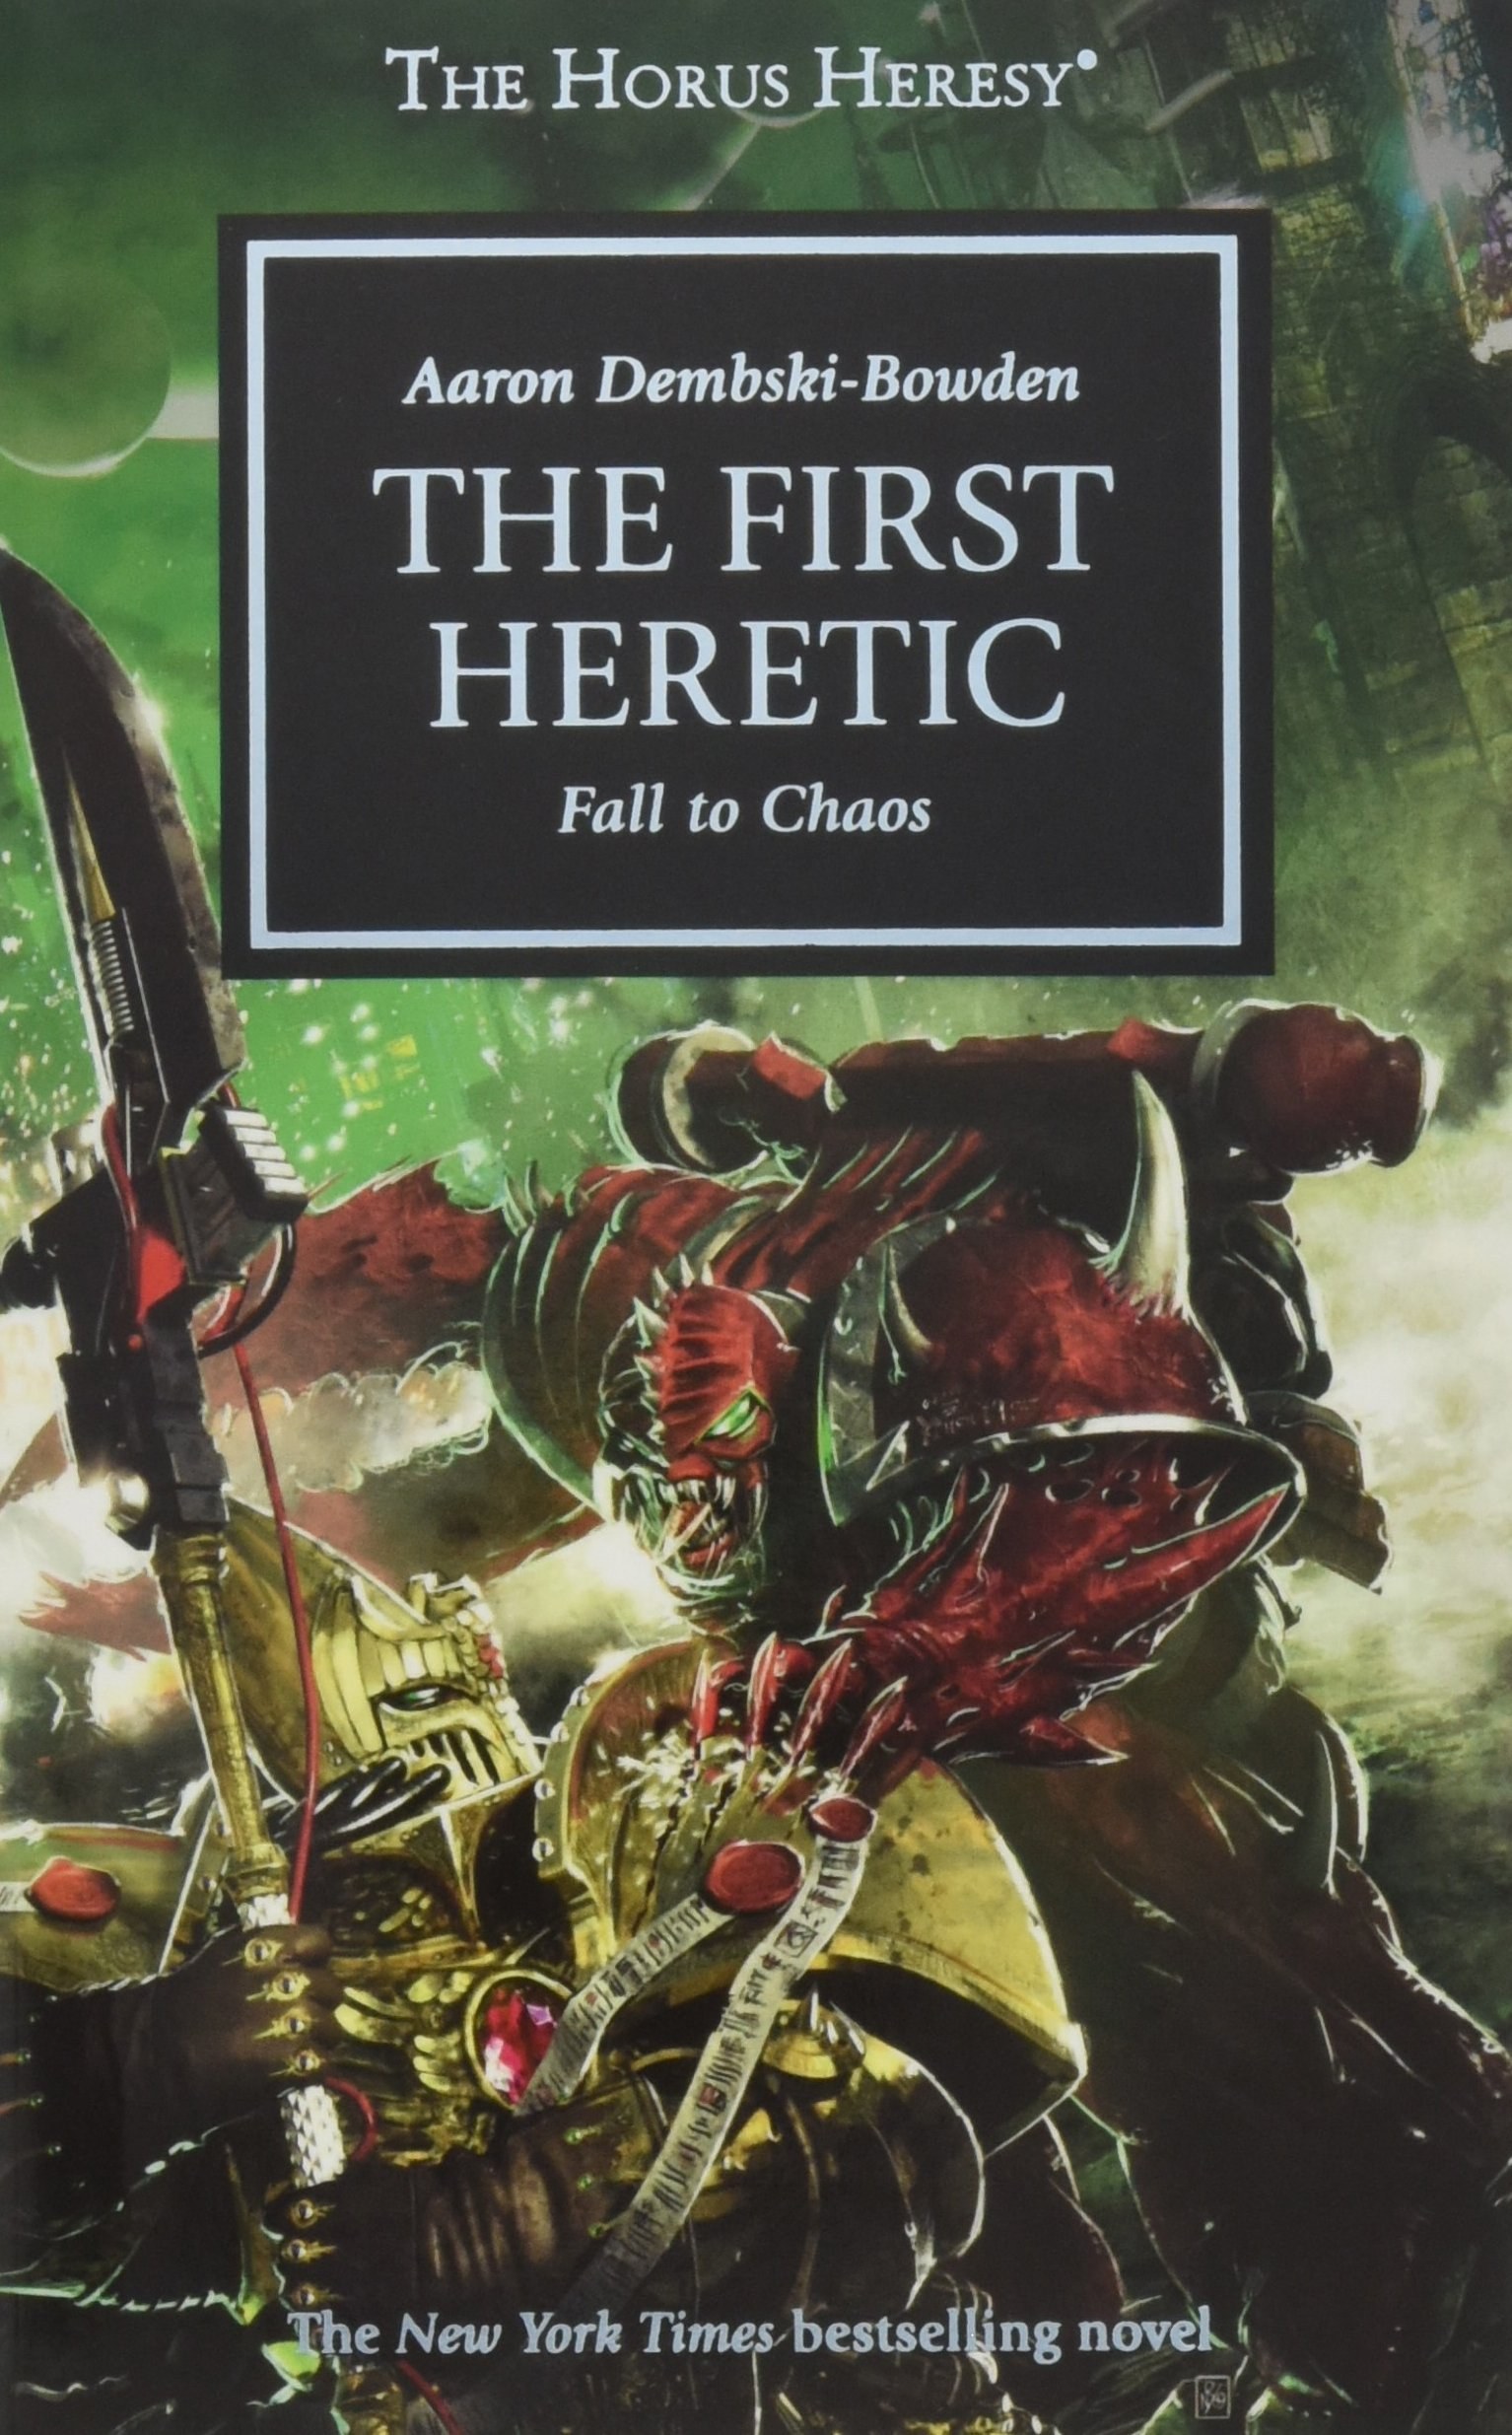 Horus Heresy novels